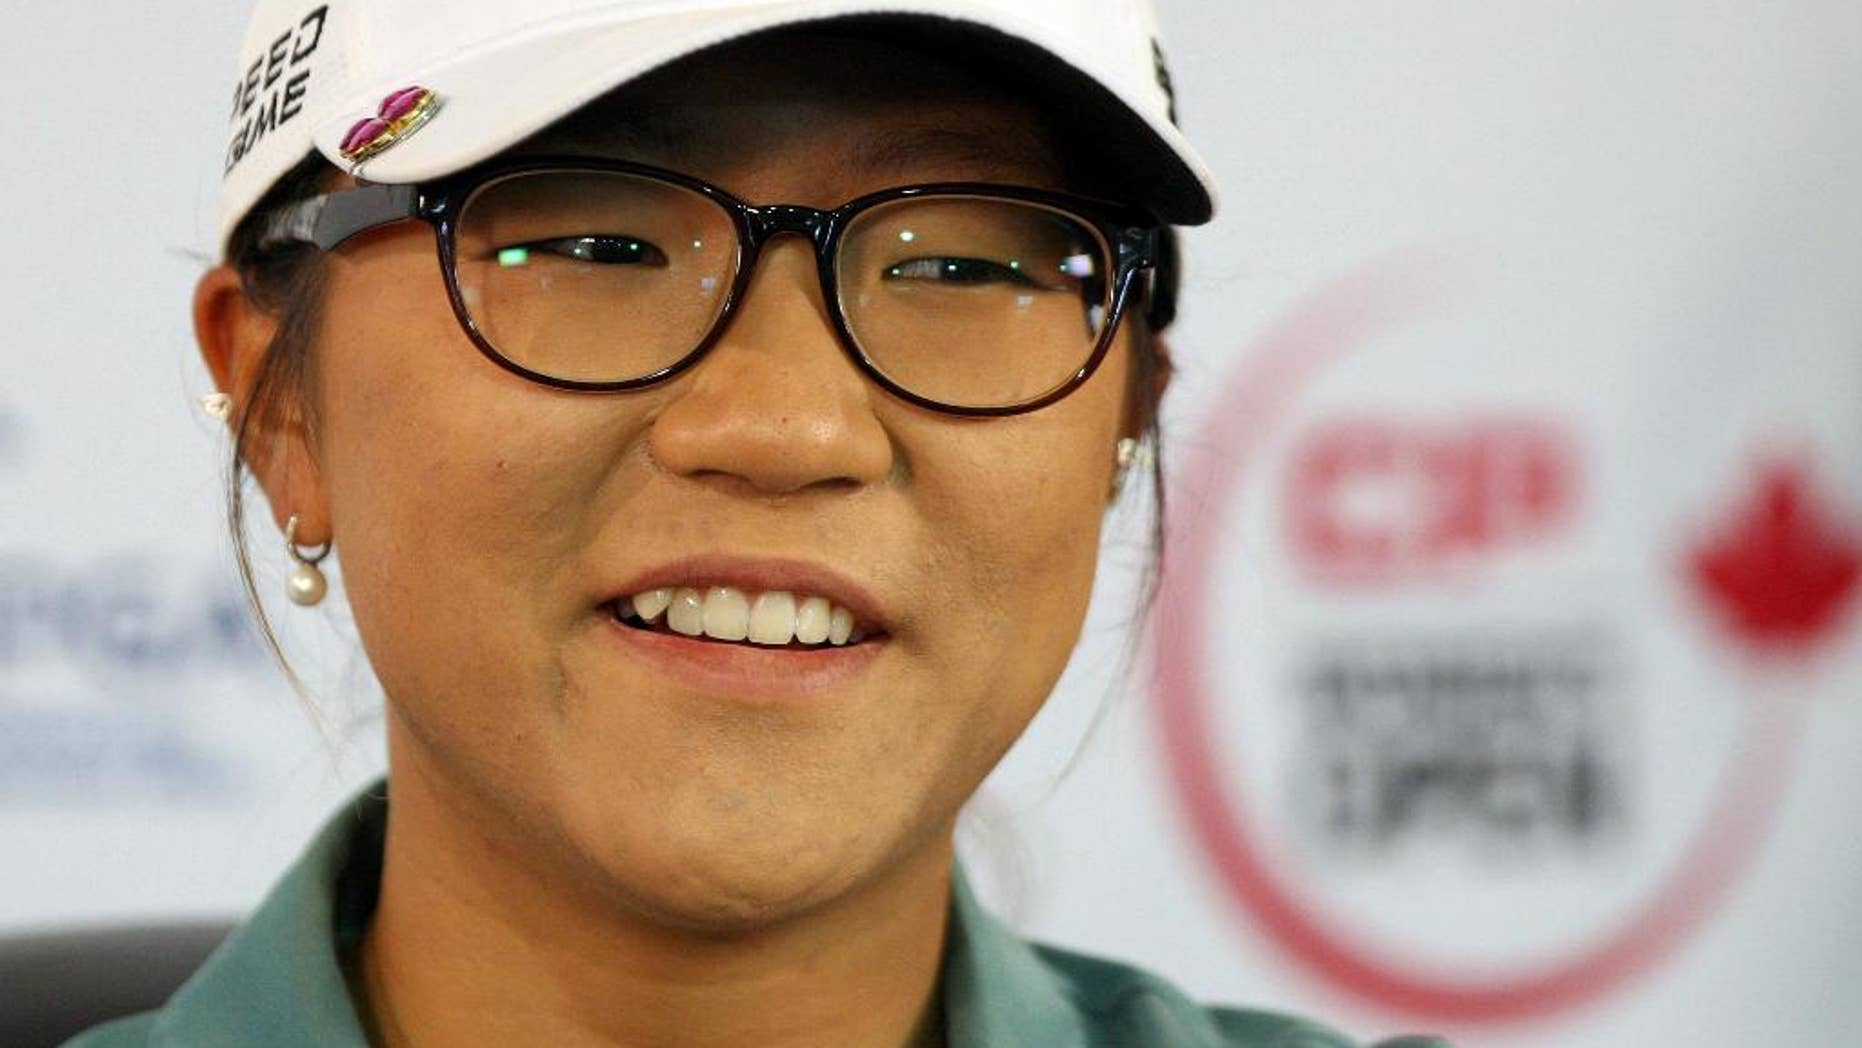 FILE - This is an Aug. 20, 2014, file photo showing Lydia Ko answering questions at the Canadian Pacific Women's Open golf tournament in London, Ontario. Ko has become the youngest player to win the LPGA Tour's rookie of the year award. The 17-year-old Ko clinched the points-based award with three tournaments remaining on the LPGA Tour schedule.  (AP Photo/The Canadian Press, Dave Chidley, File)